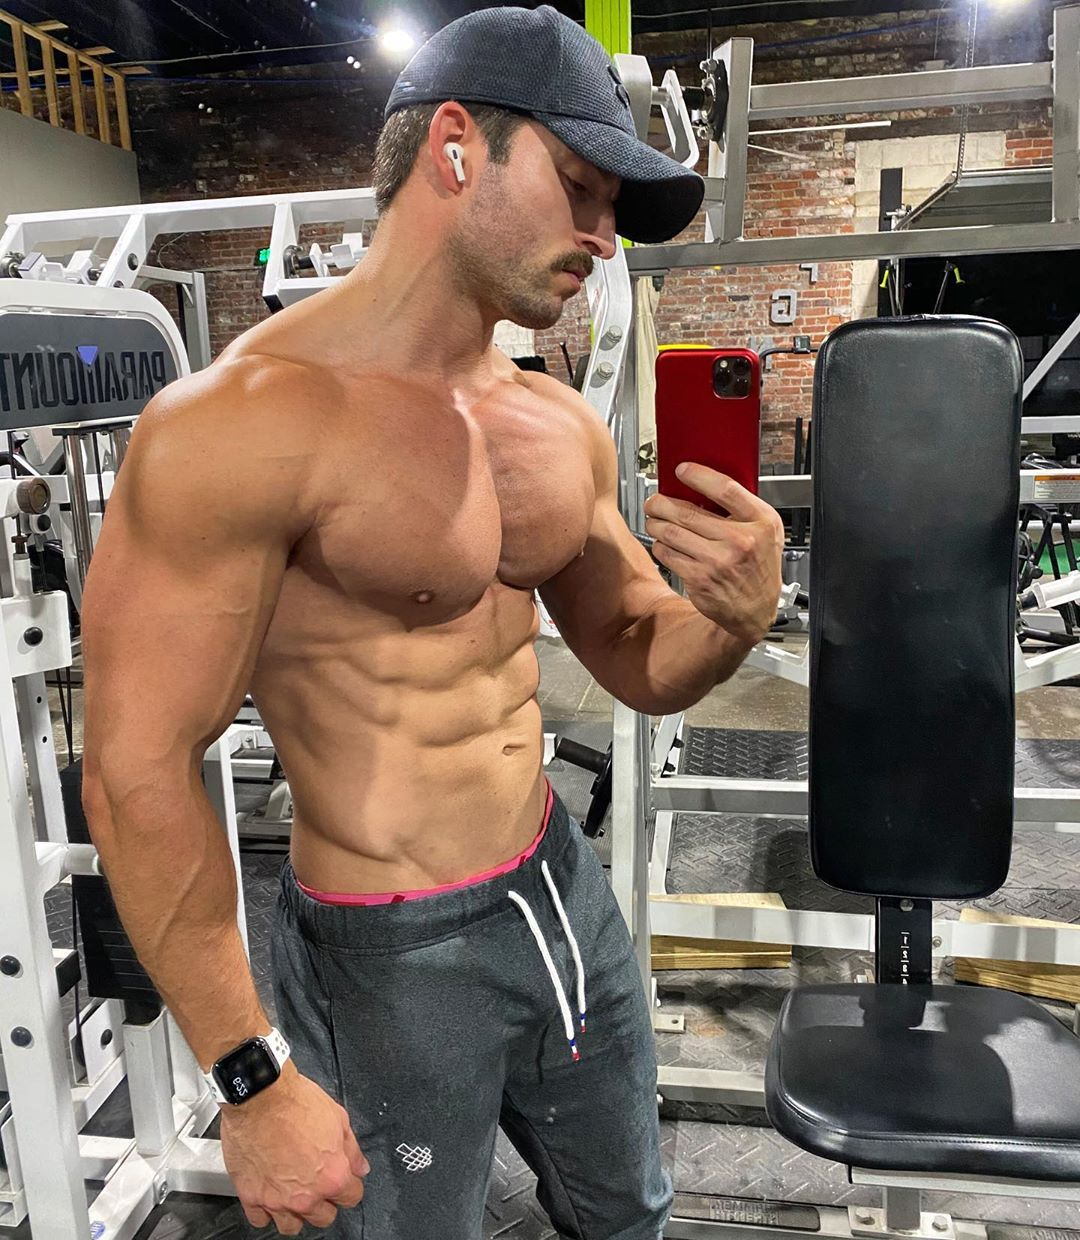 Ken Clarke On Instagram That Chest Pump Tho The Past Few Weeks I Ve Put A Lot Of Focus On Upper Chest And I M Thinking It S Paying Off